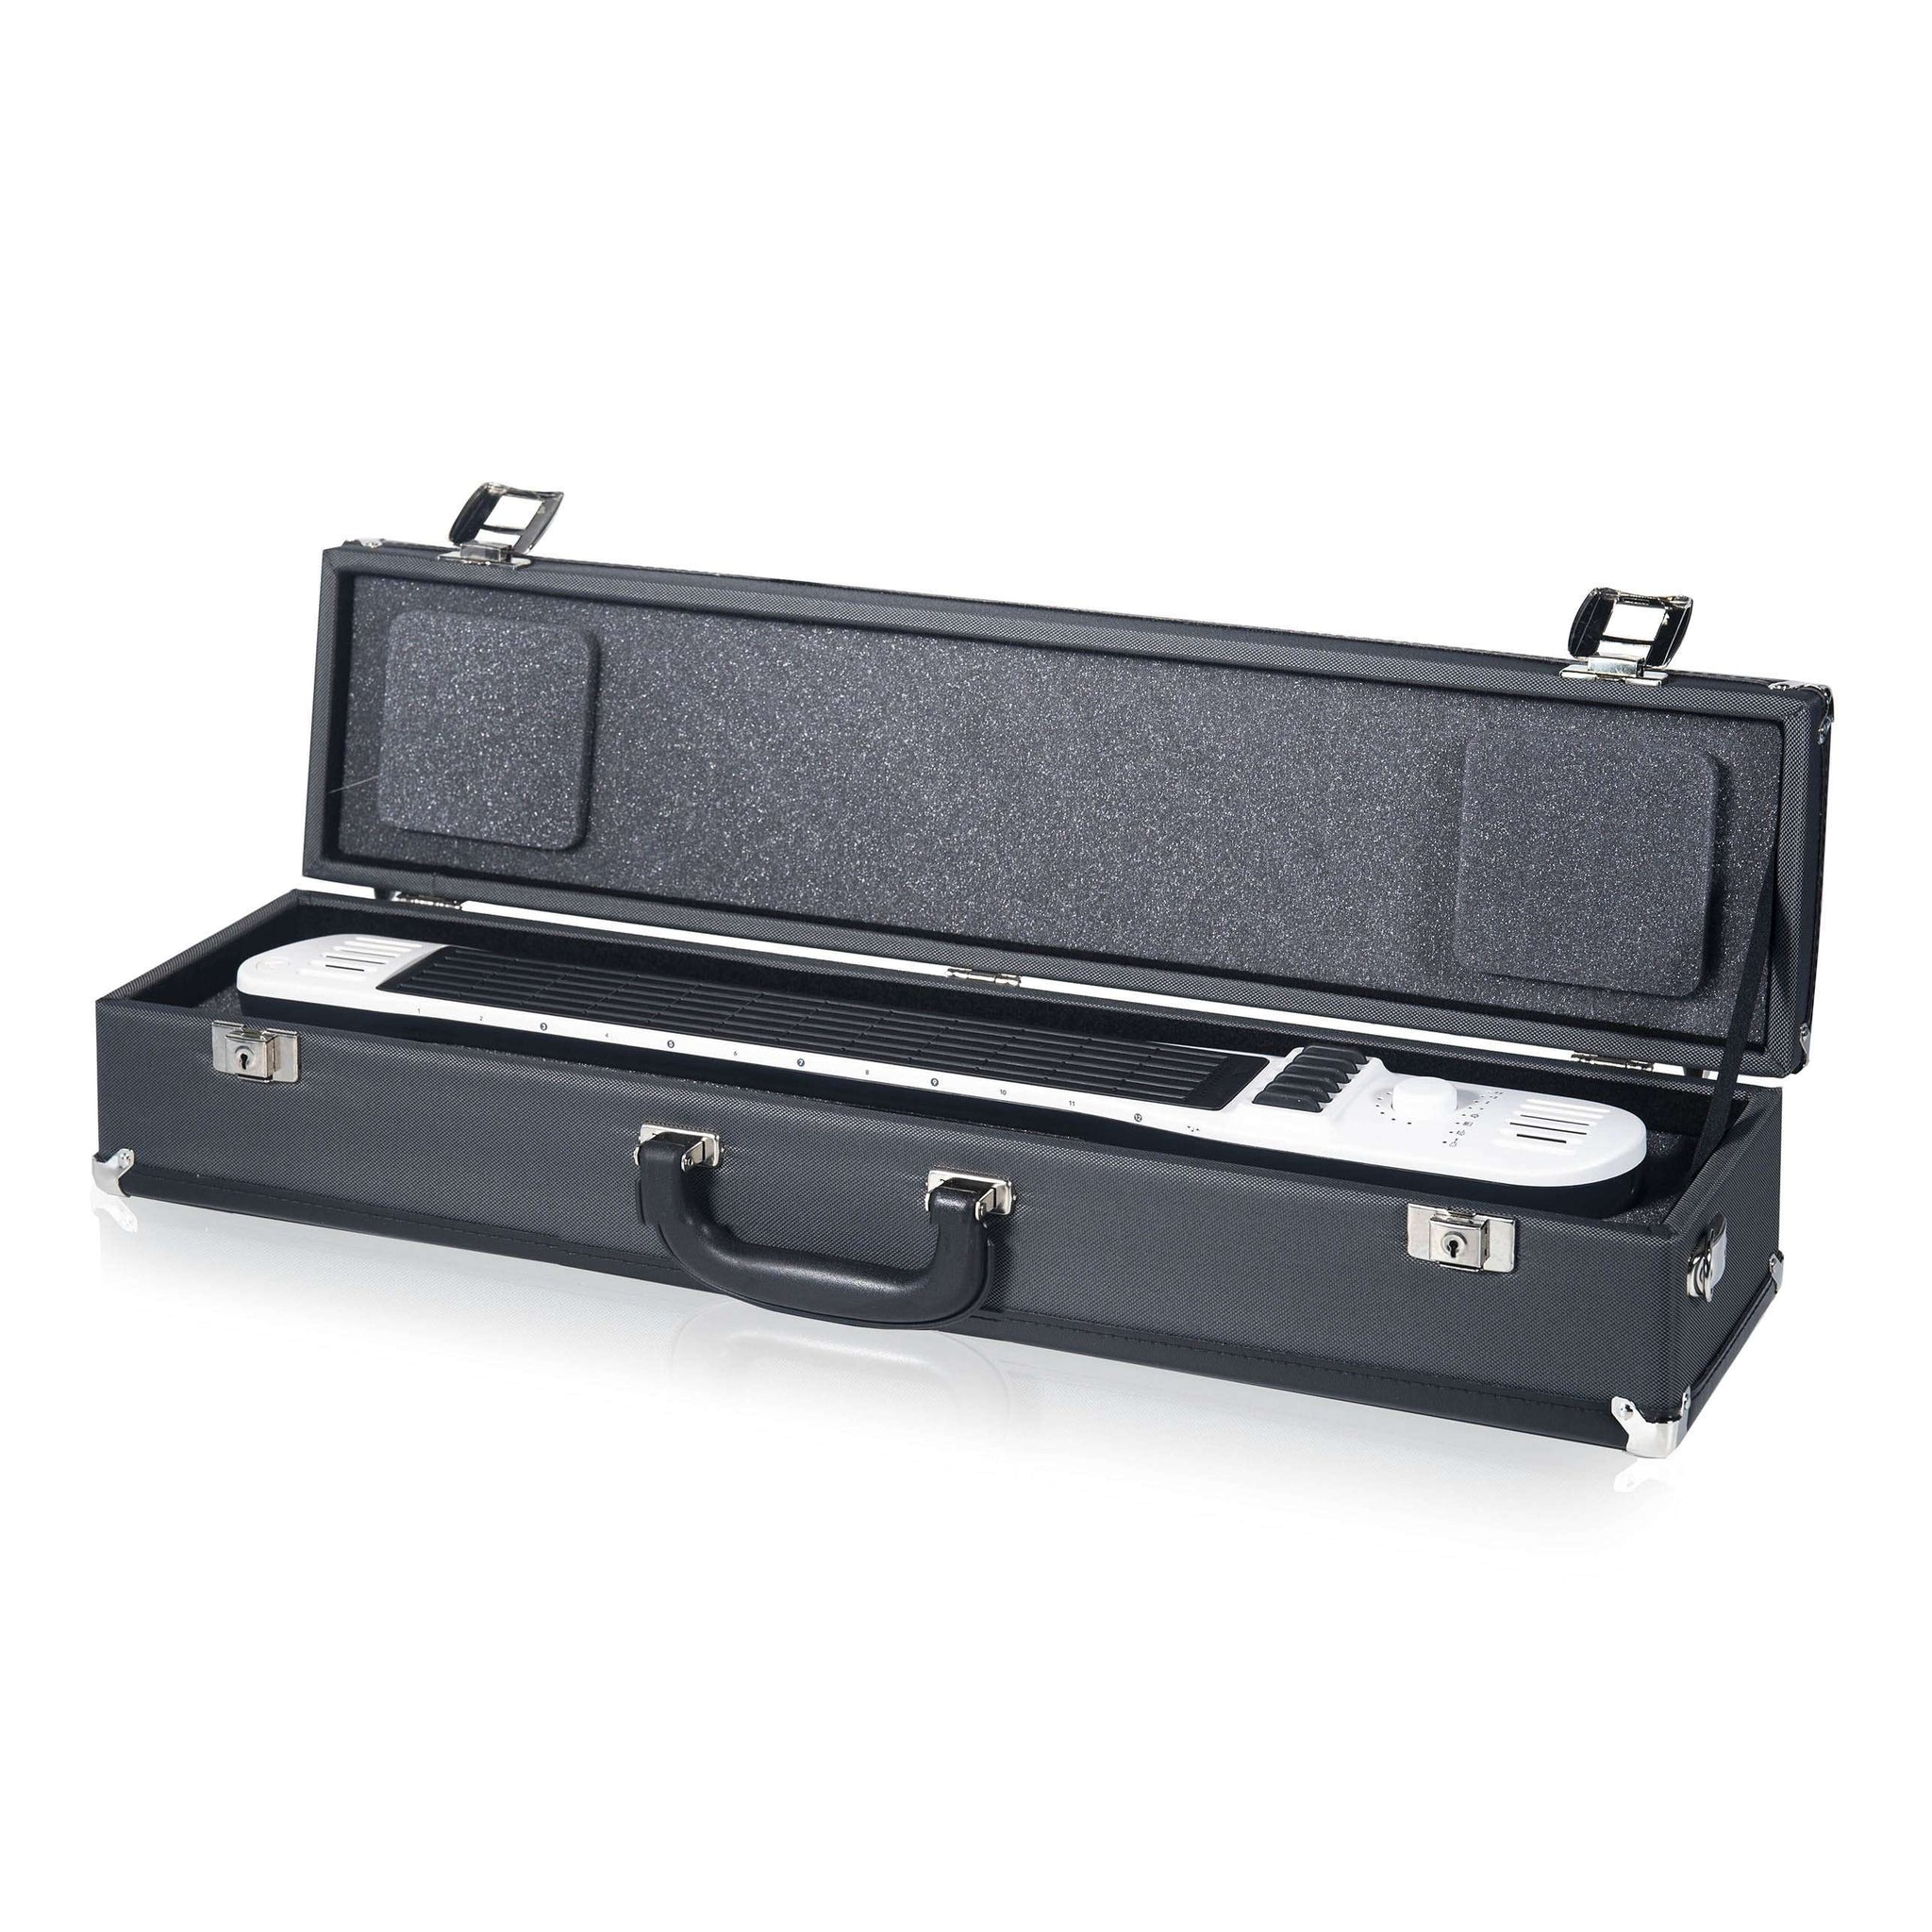 INSTRUMENT 1 Hardshell Case